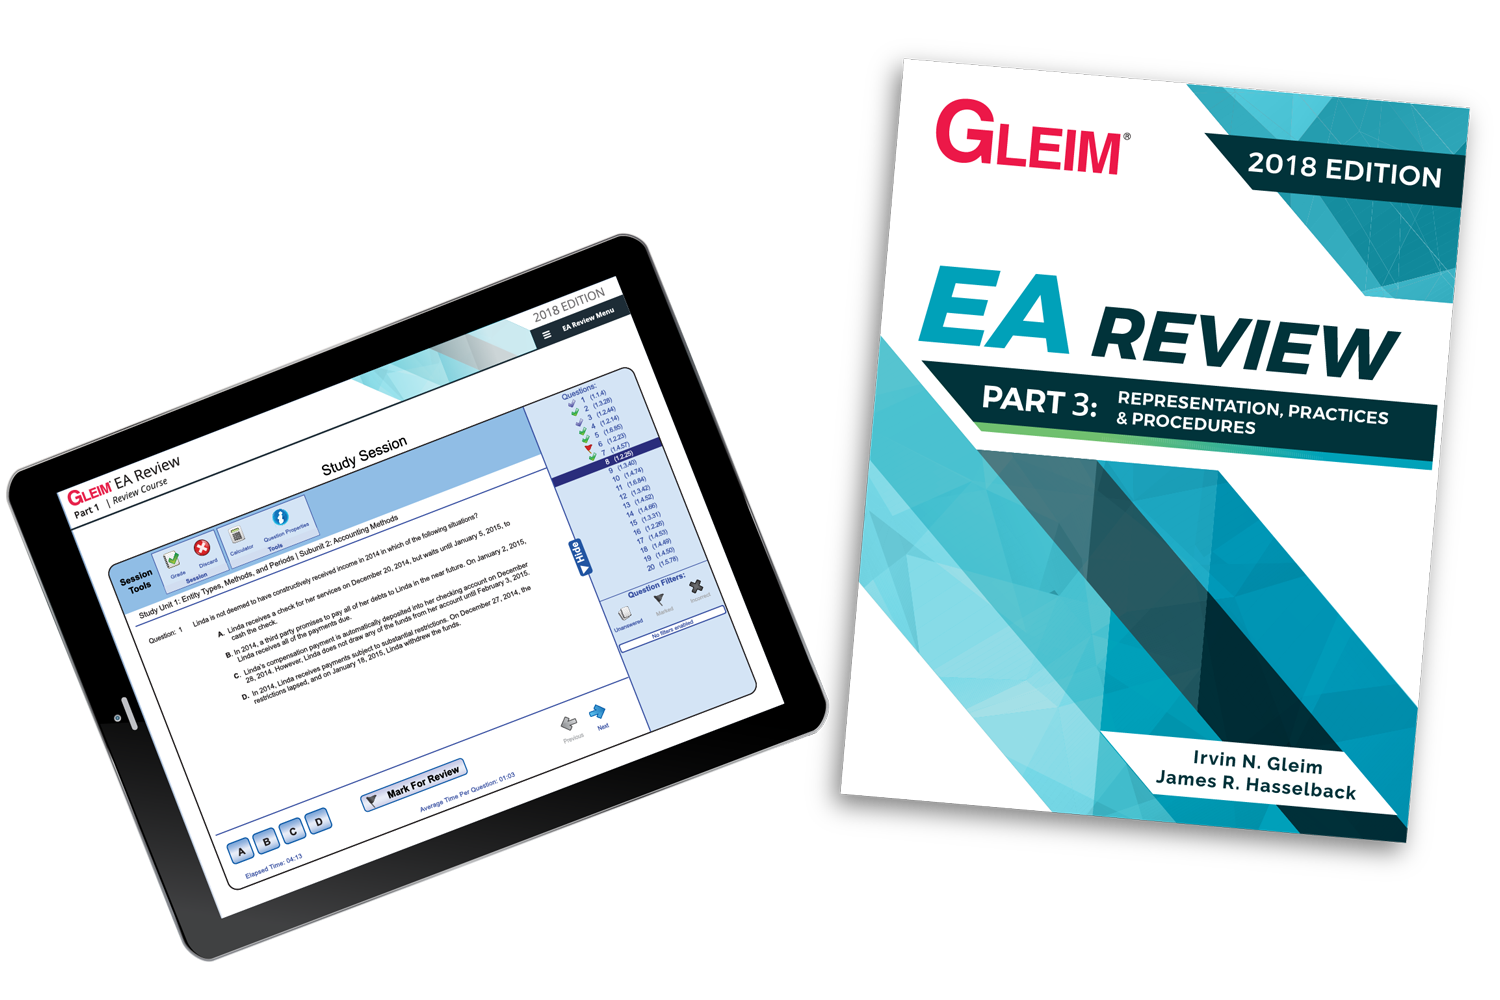 Gleim EA Review Book & Test Prep Online – Part 3 (2018) - #OAB3863S